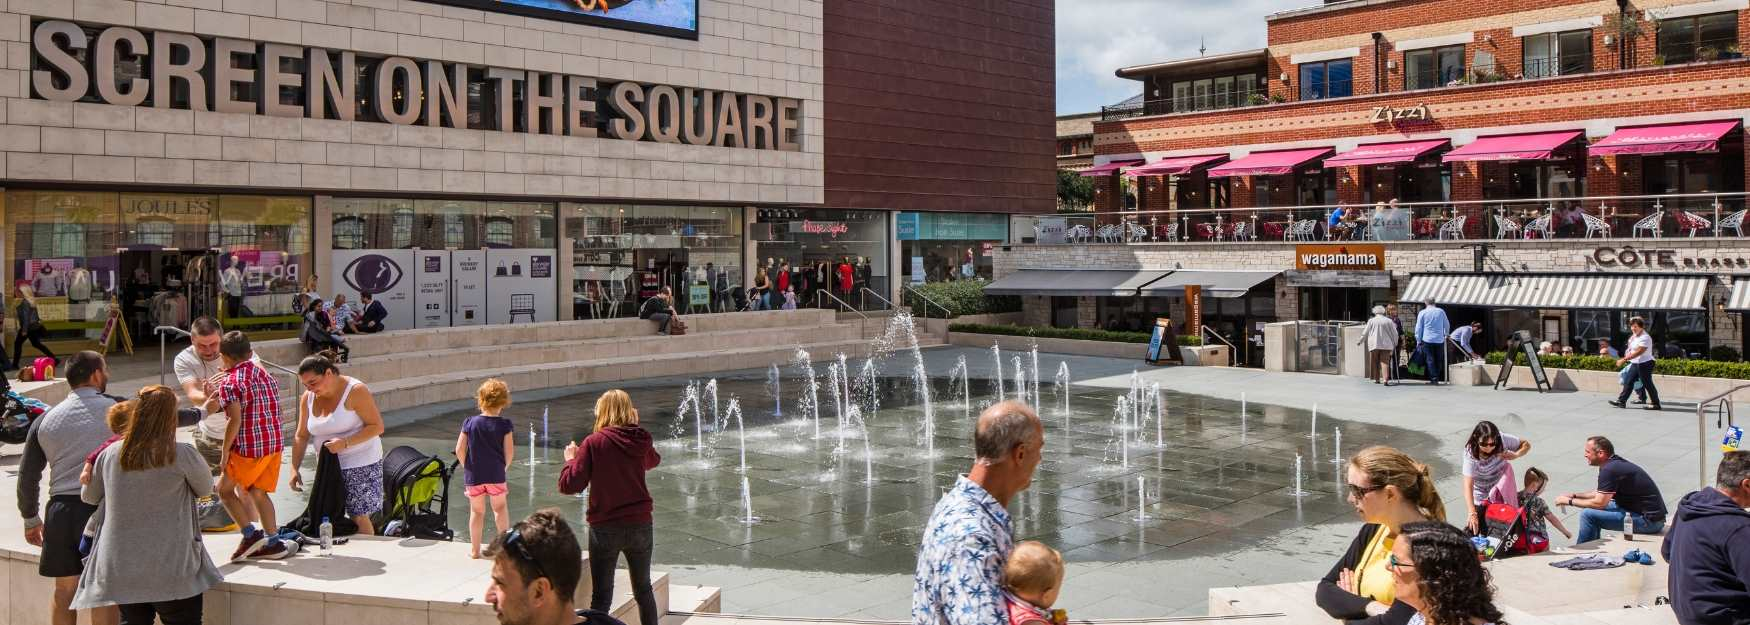 Summer fun at Brewery Square in Dorchester